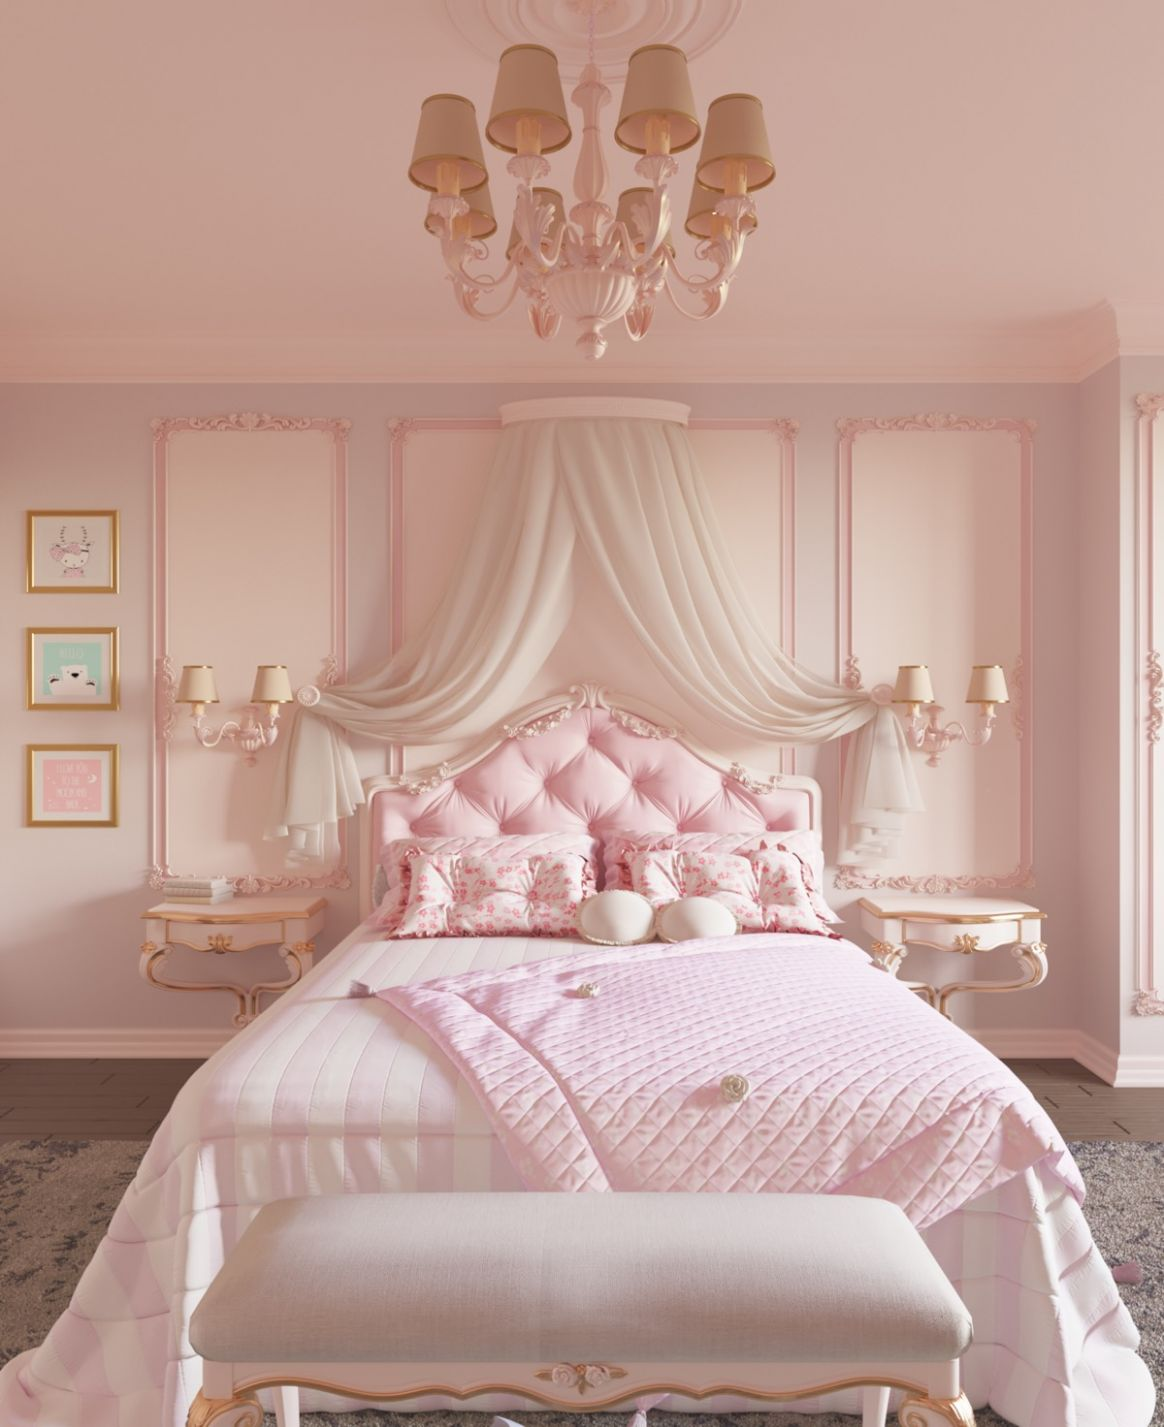 11 Pink Bedrooms With Images, Tips And Accessories To Help You ...